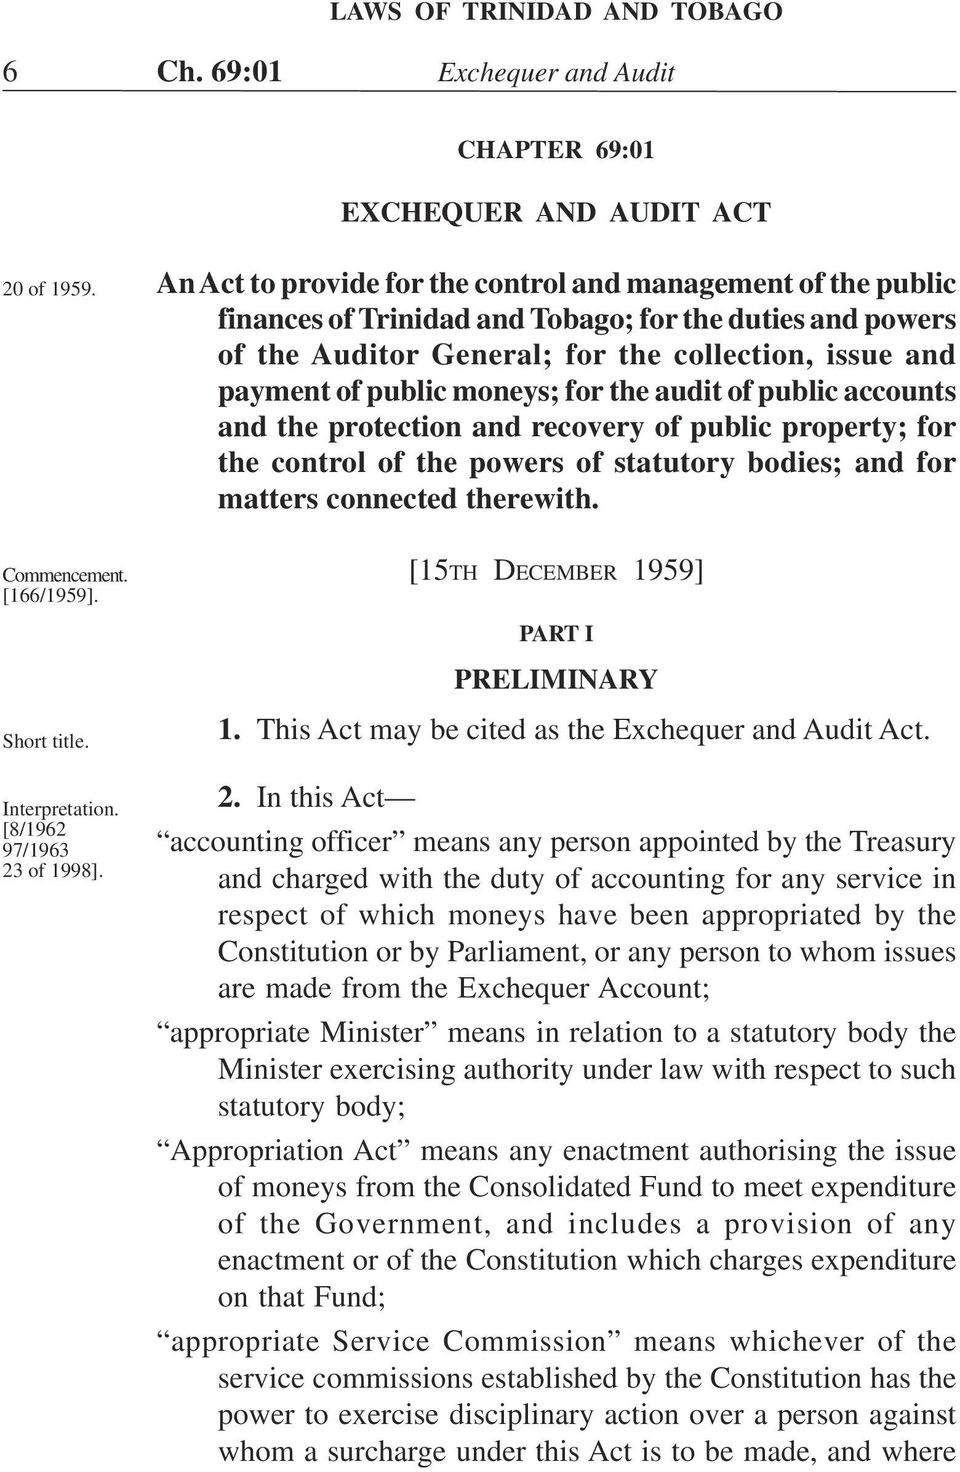 moneys; for the audit of public accounts and the protection and recovery of public property; for the control of the powers of statutory bodies; and for matters connected therewith.